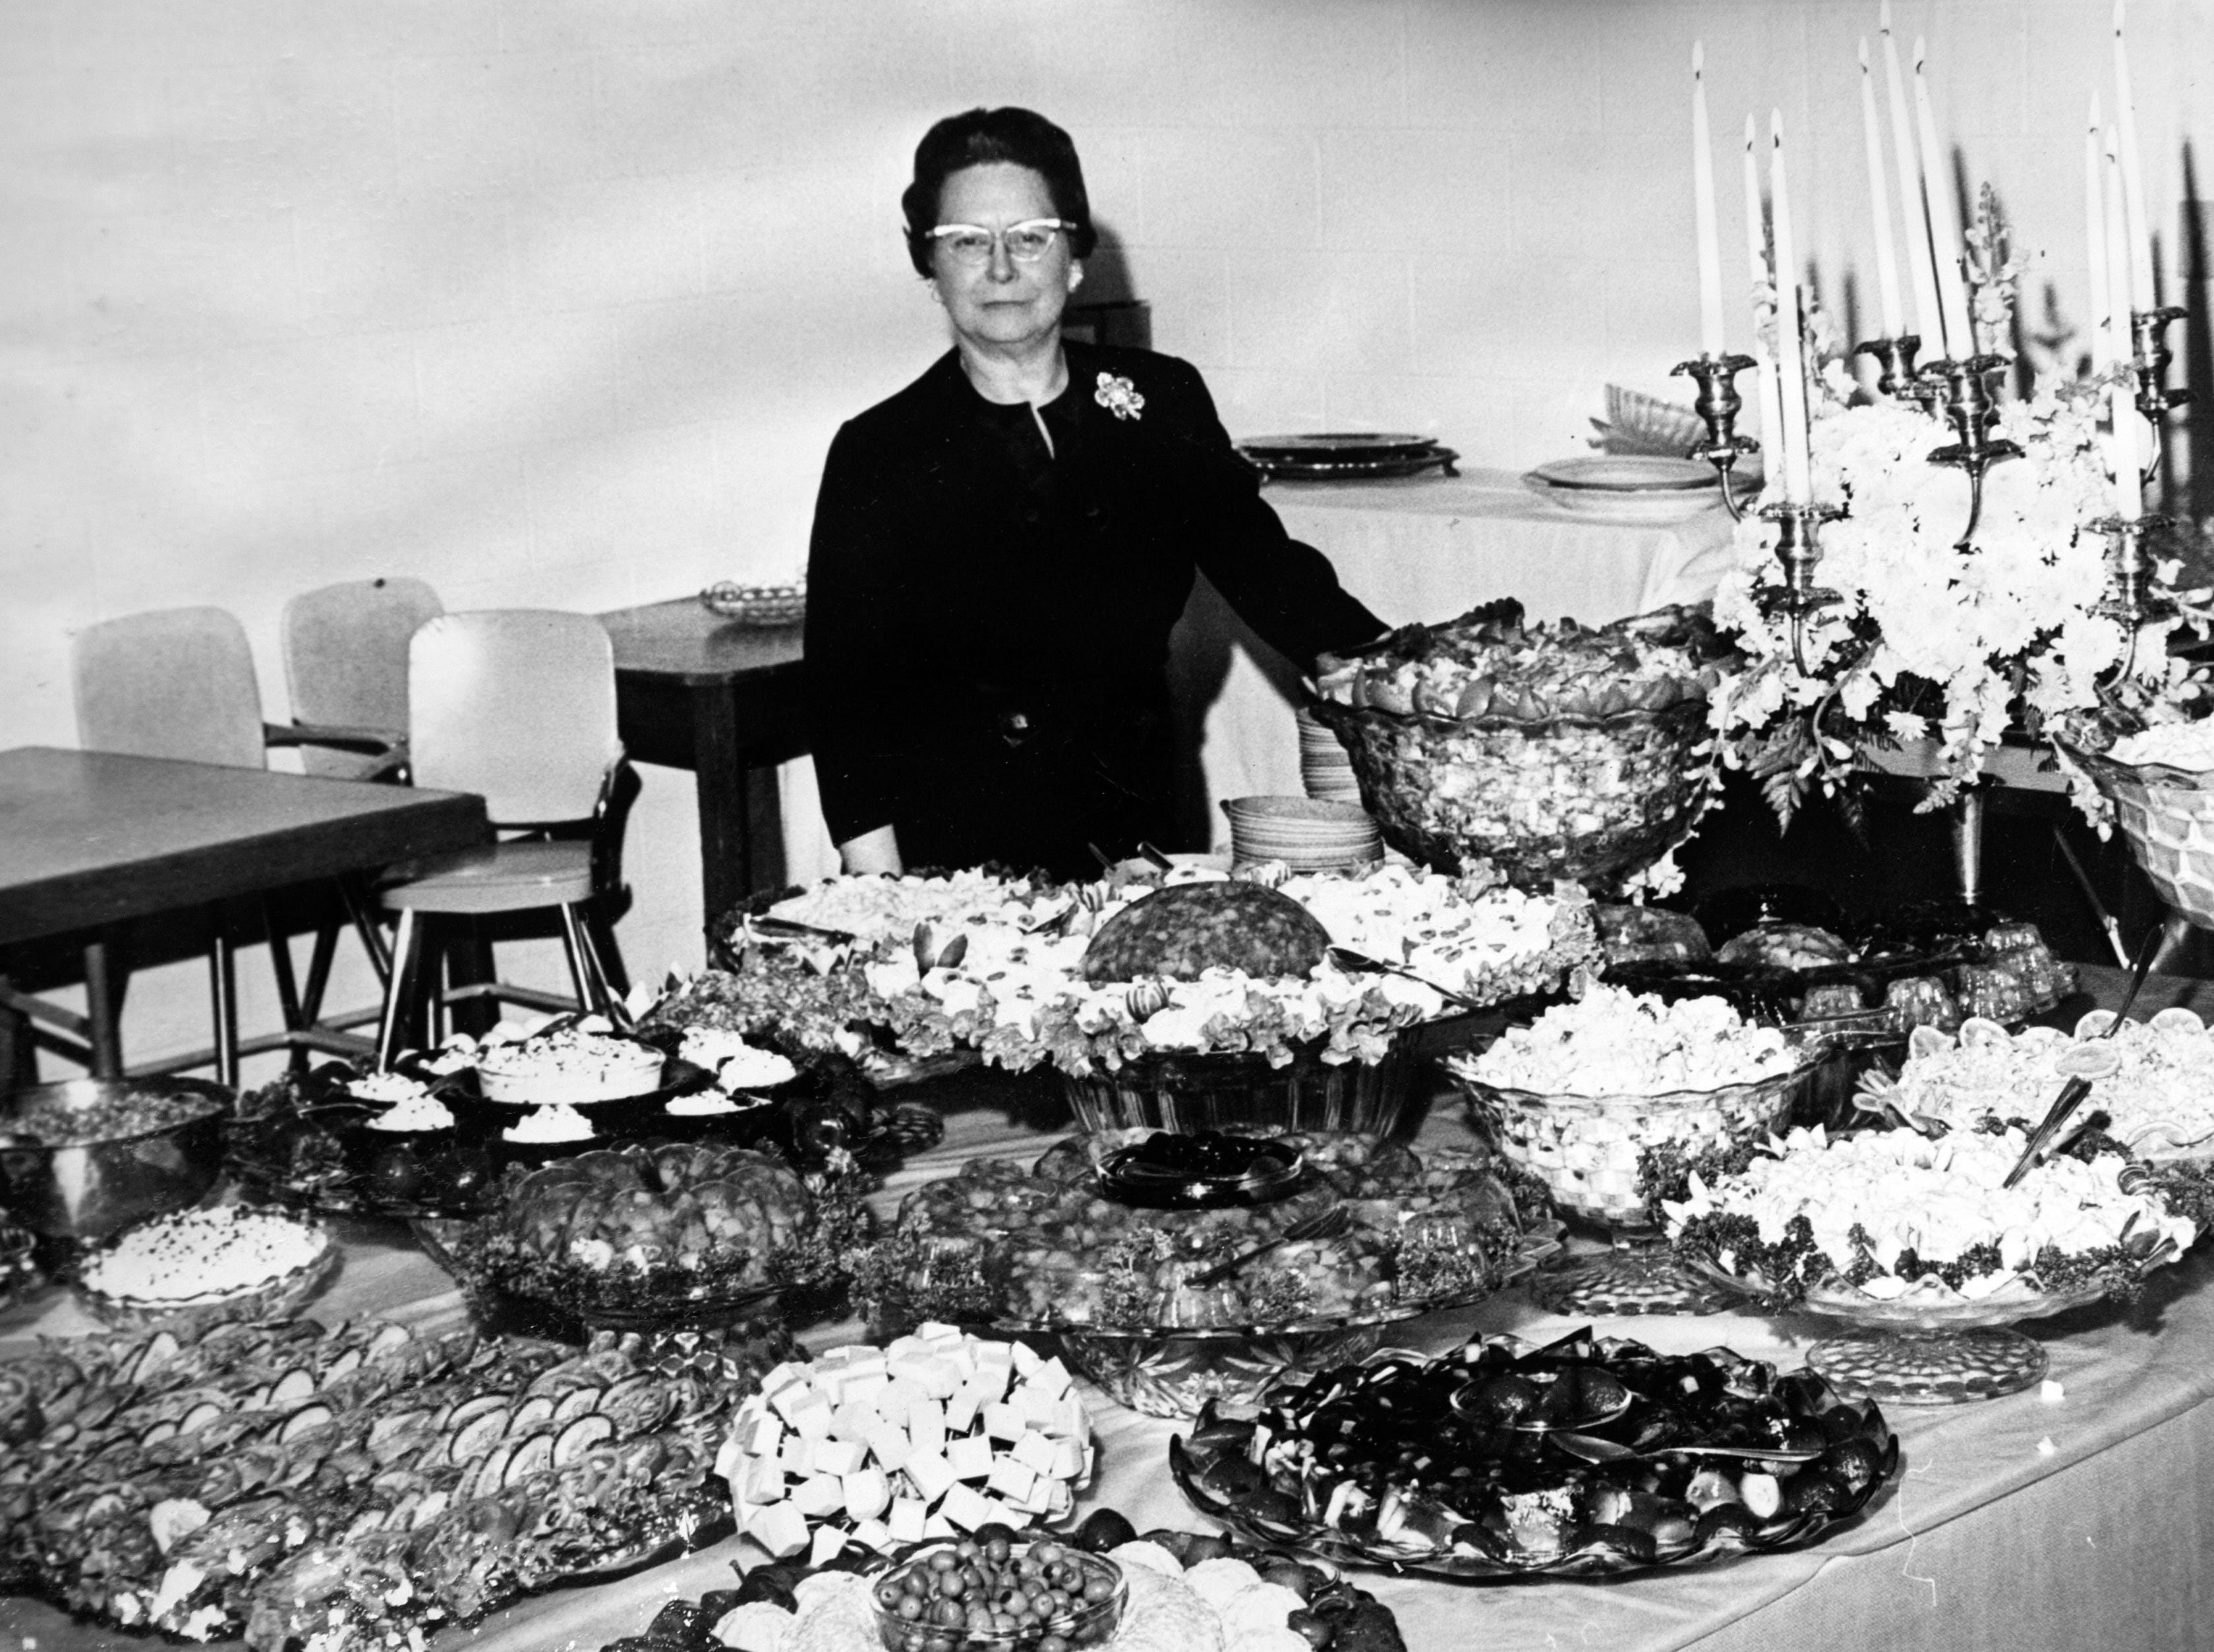 Helma's restaurant owner Helma Gilreath shows off a buffet in the 1960s. Gilreath's restaurant was one of the first in the county to end the policy of segregation in the 1960s.